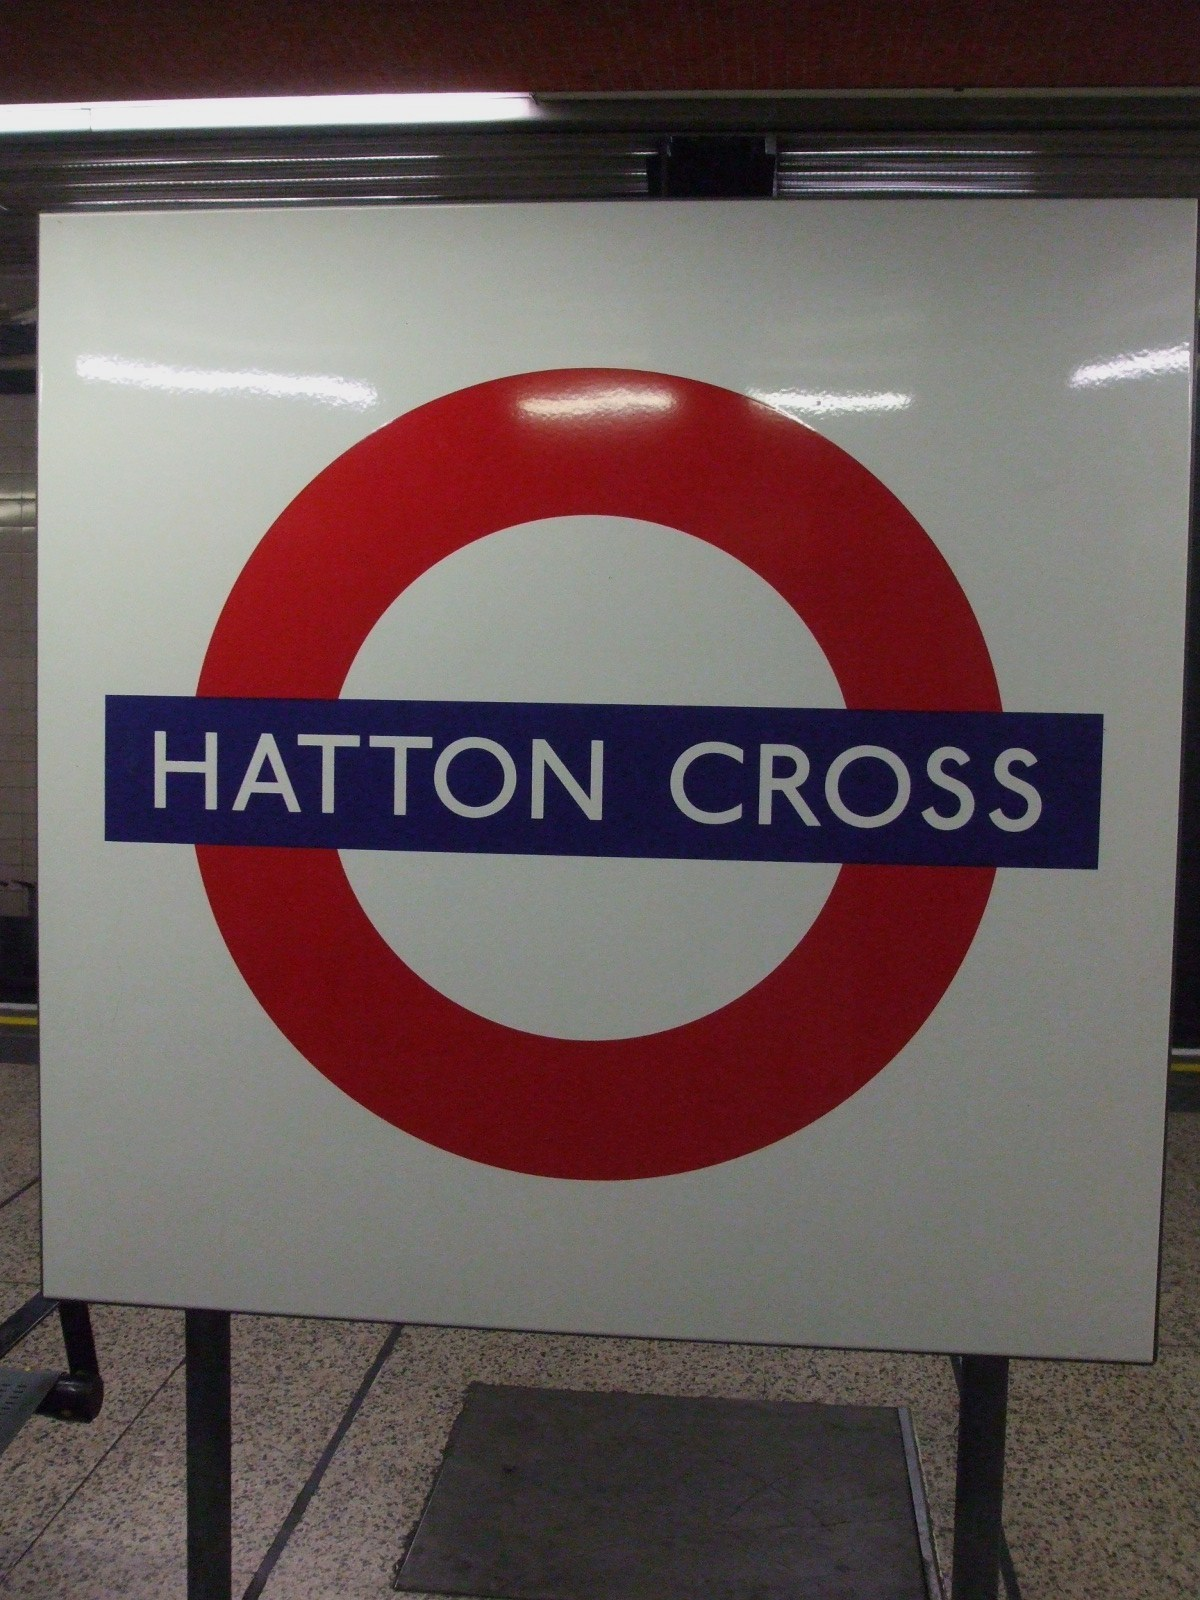 Hatton Cross Tube Station London